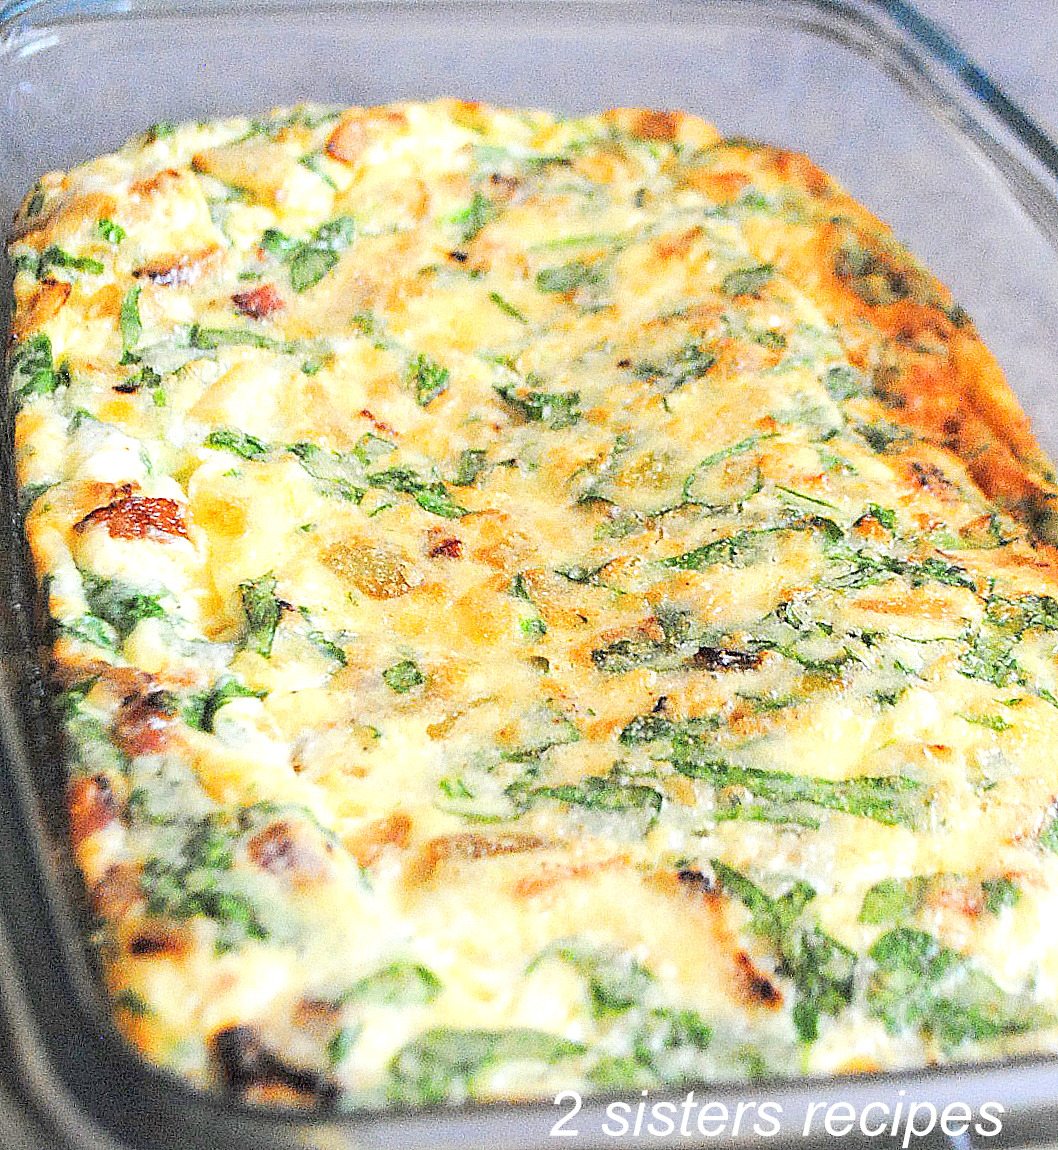 Spinach and Egg Breakfast Casserole by 2sistersrecipes.com